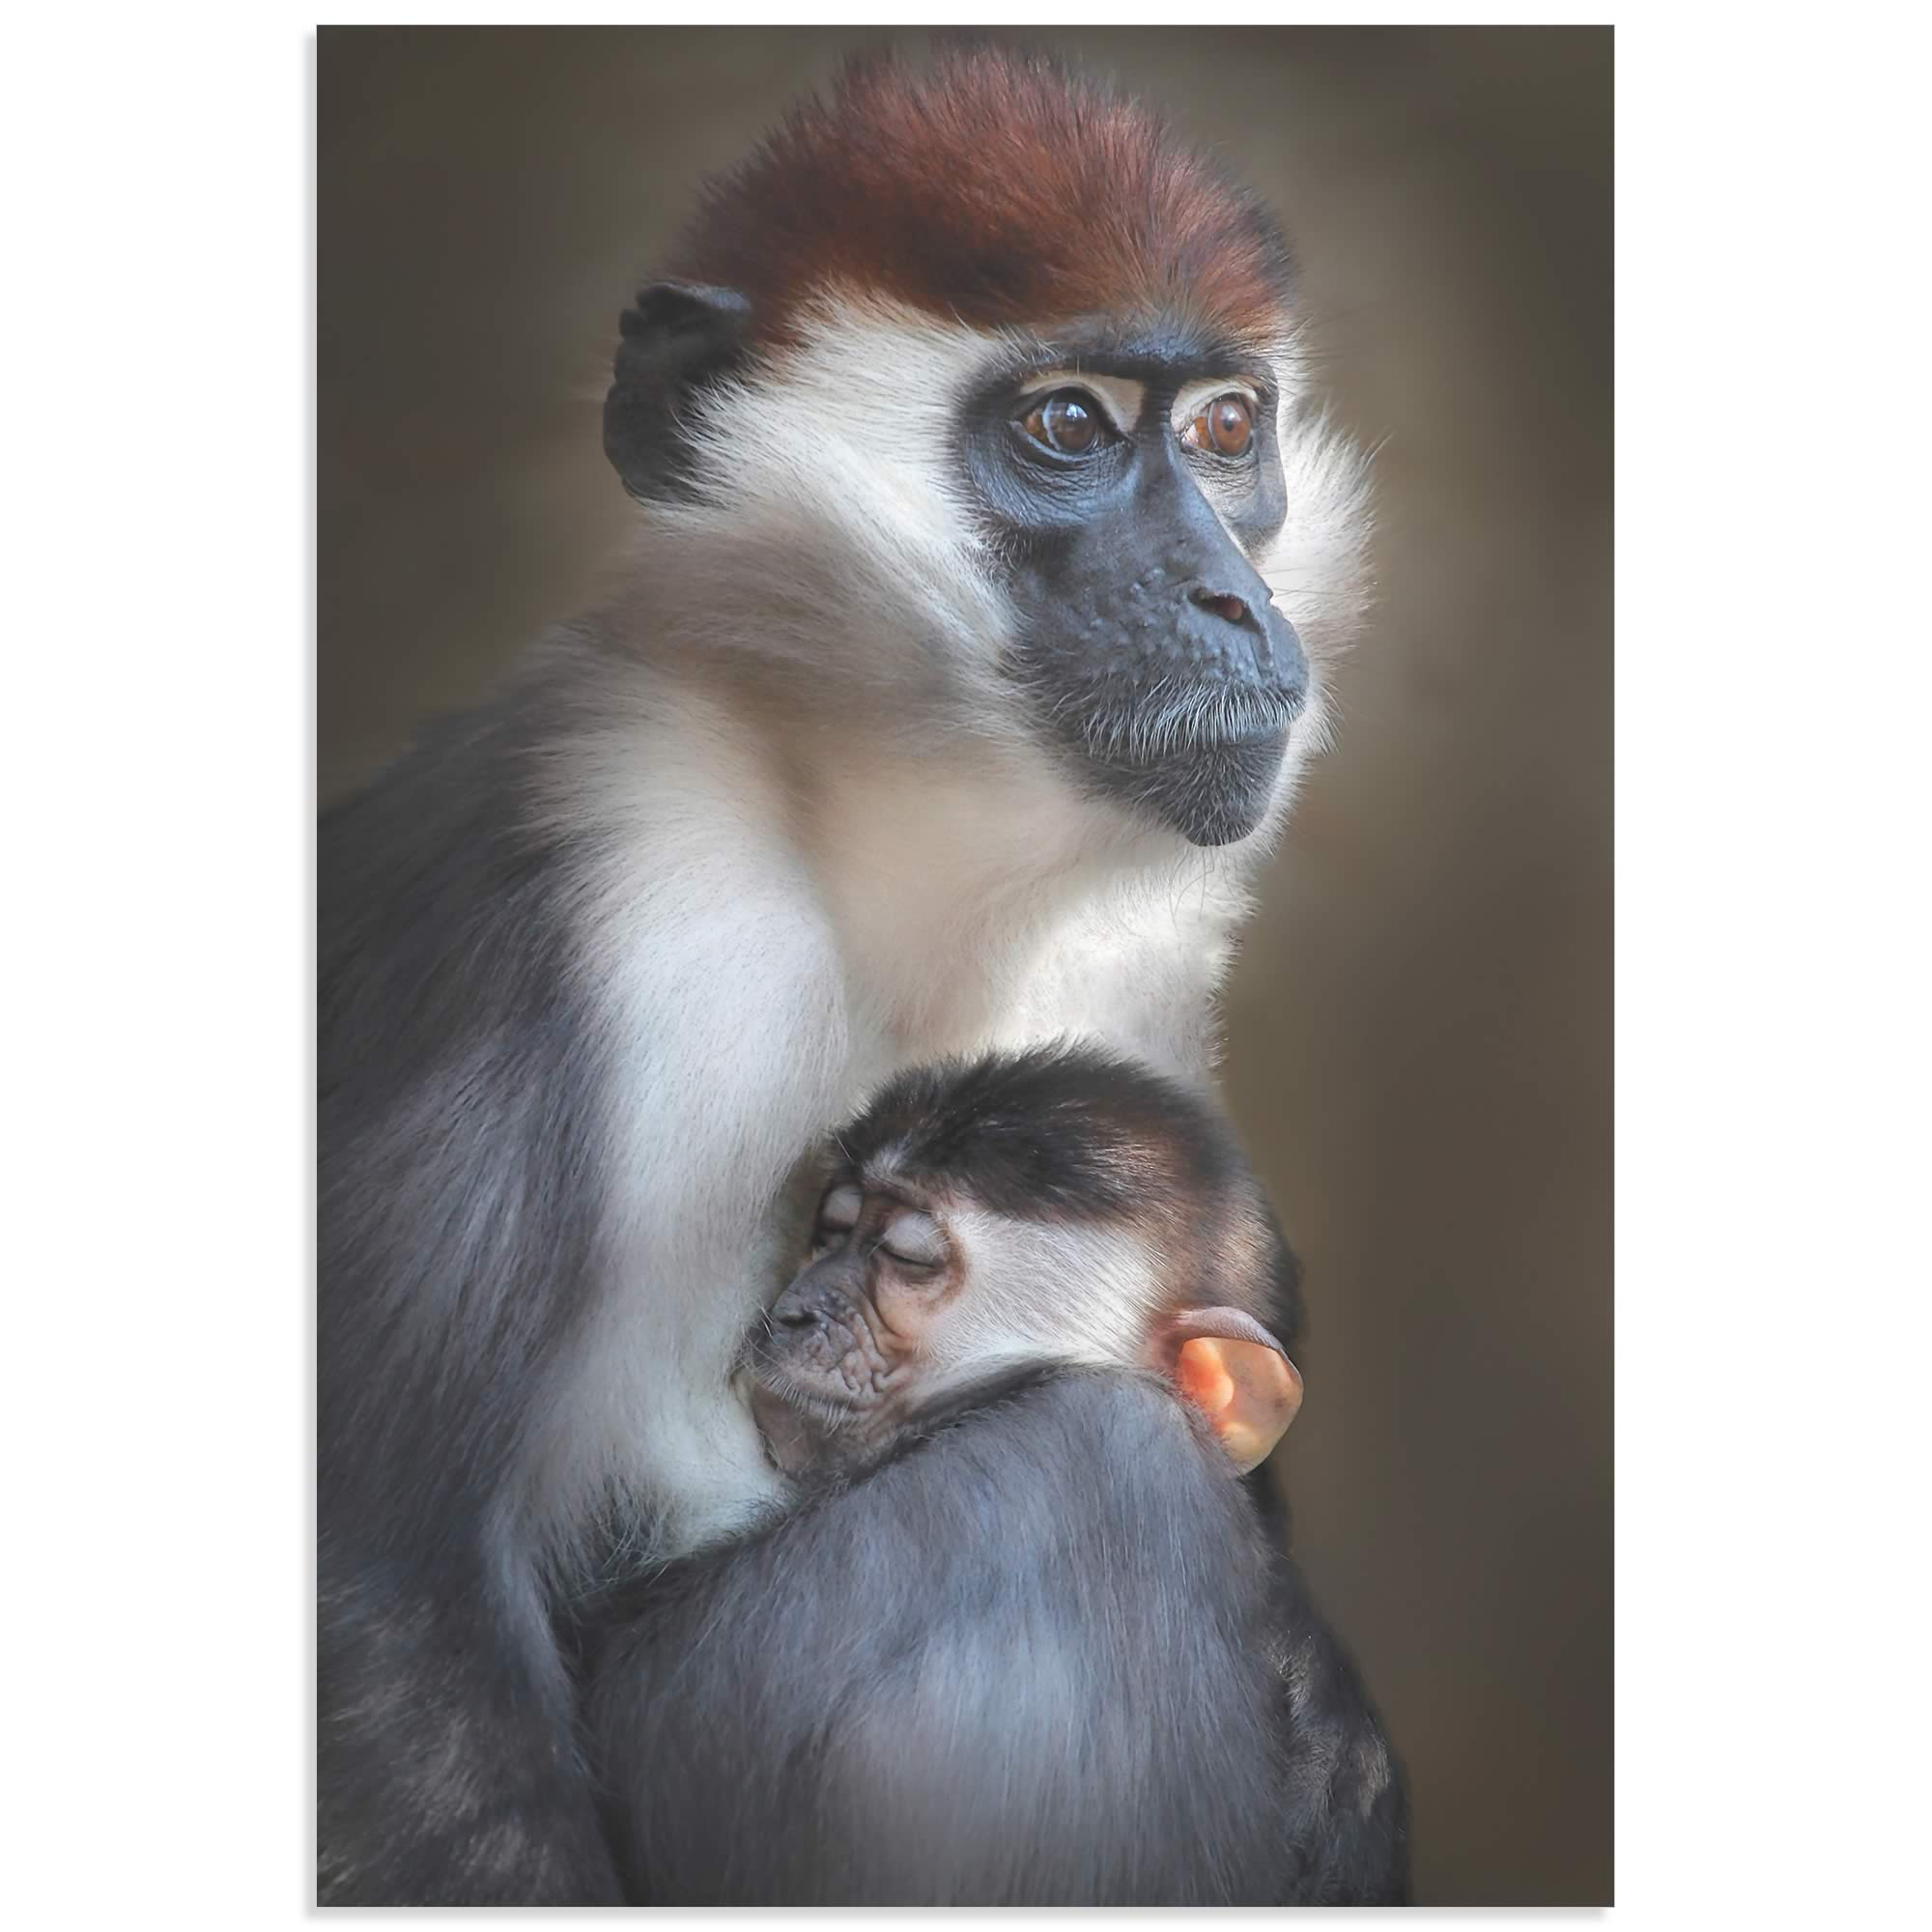 Tired Monkey by Carles Just - Monkey Wall Art on Metal or Acrylic